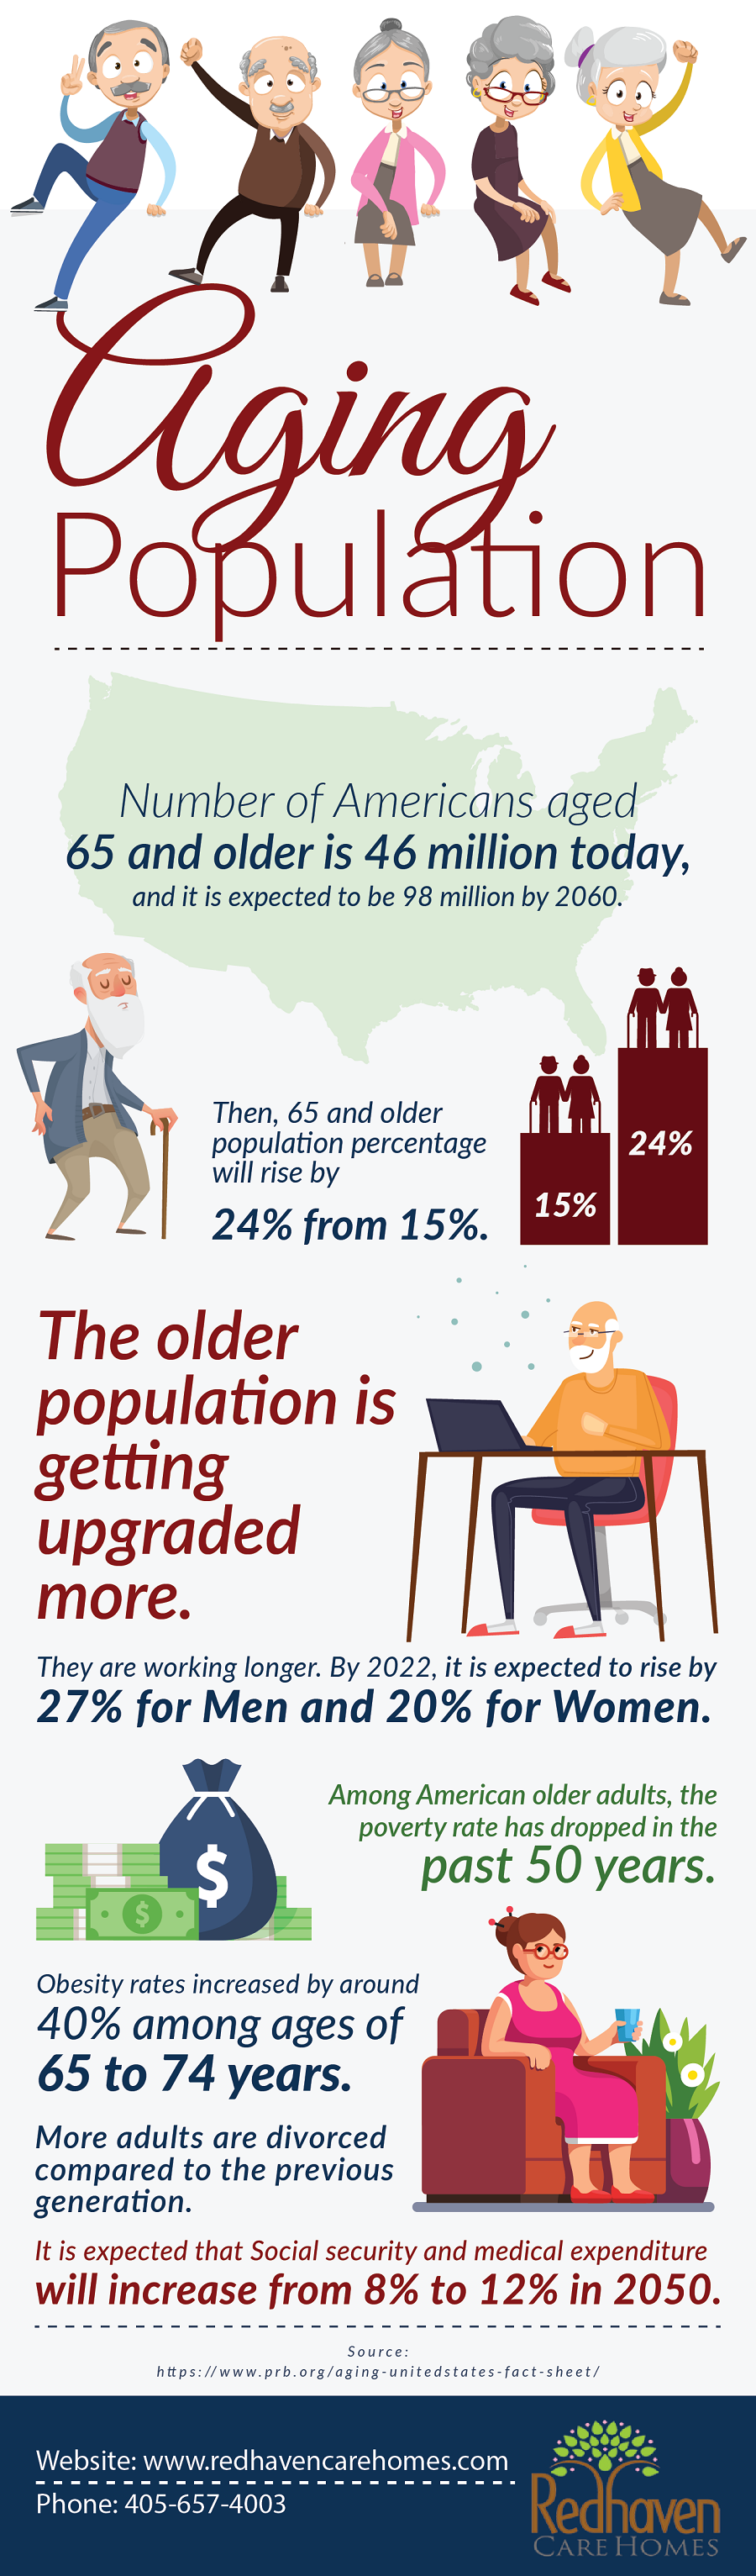 Aging population in US.png